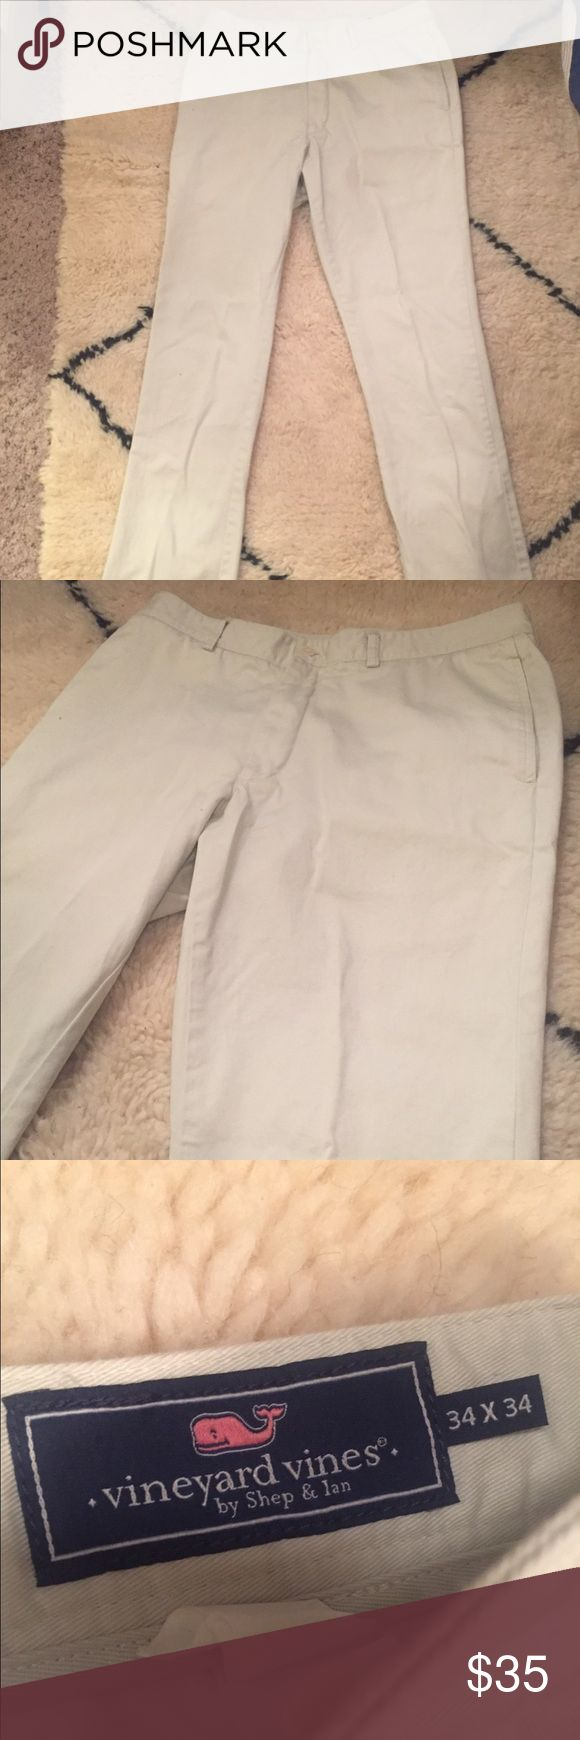 Vineyard Vines Slim fit Club Pants 34x34 Vineyard Vines Slim fit khaki club pants, size 34x34. These were worn once and are like new, no tears or stains! Vineyard Vines Pants Chinos & Khakis